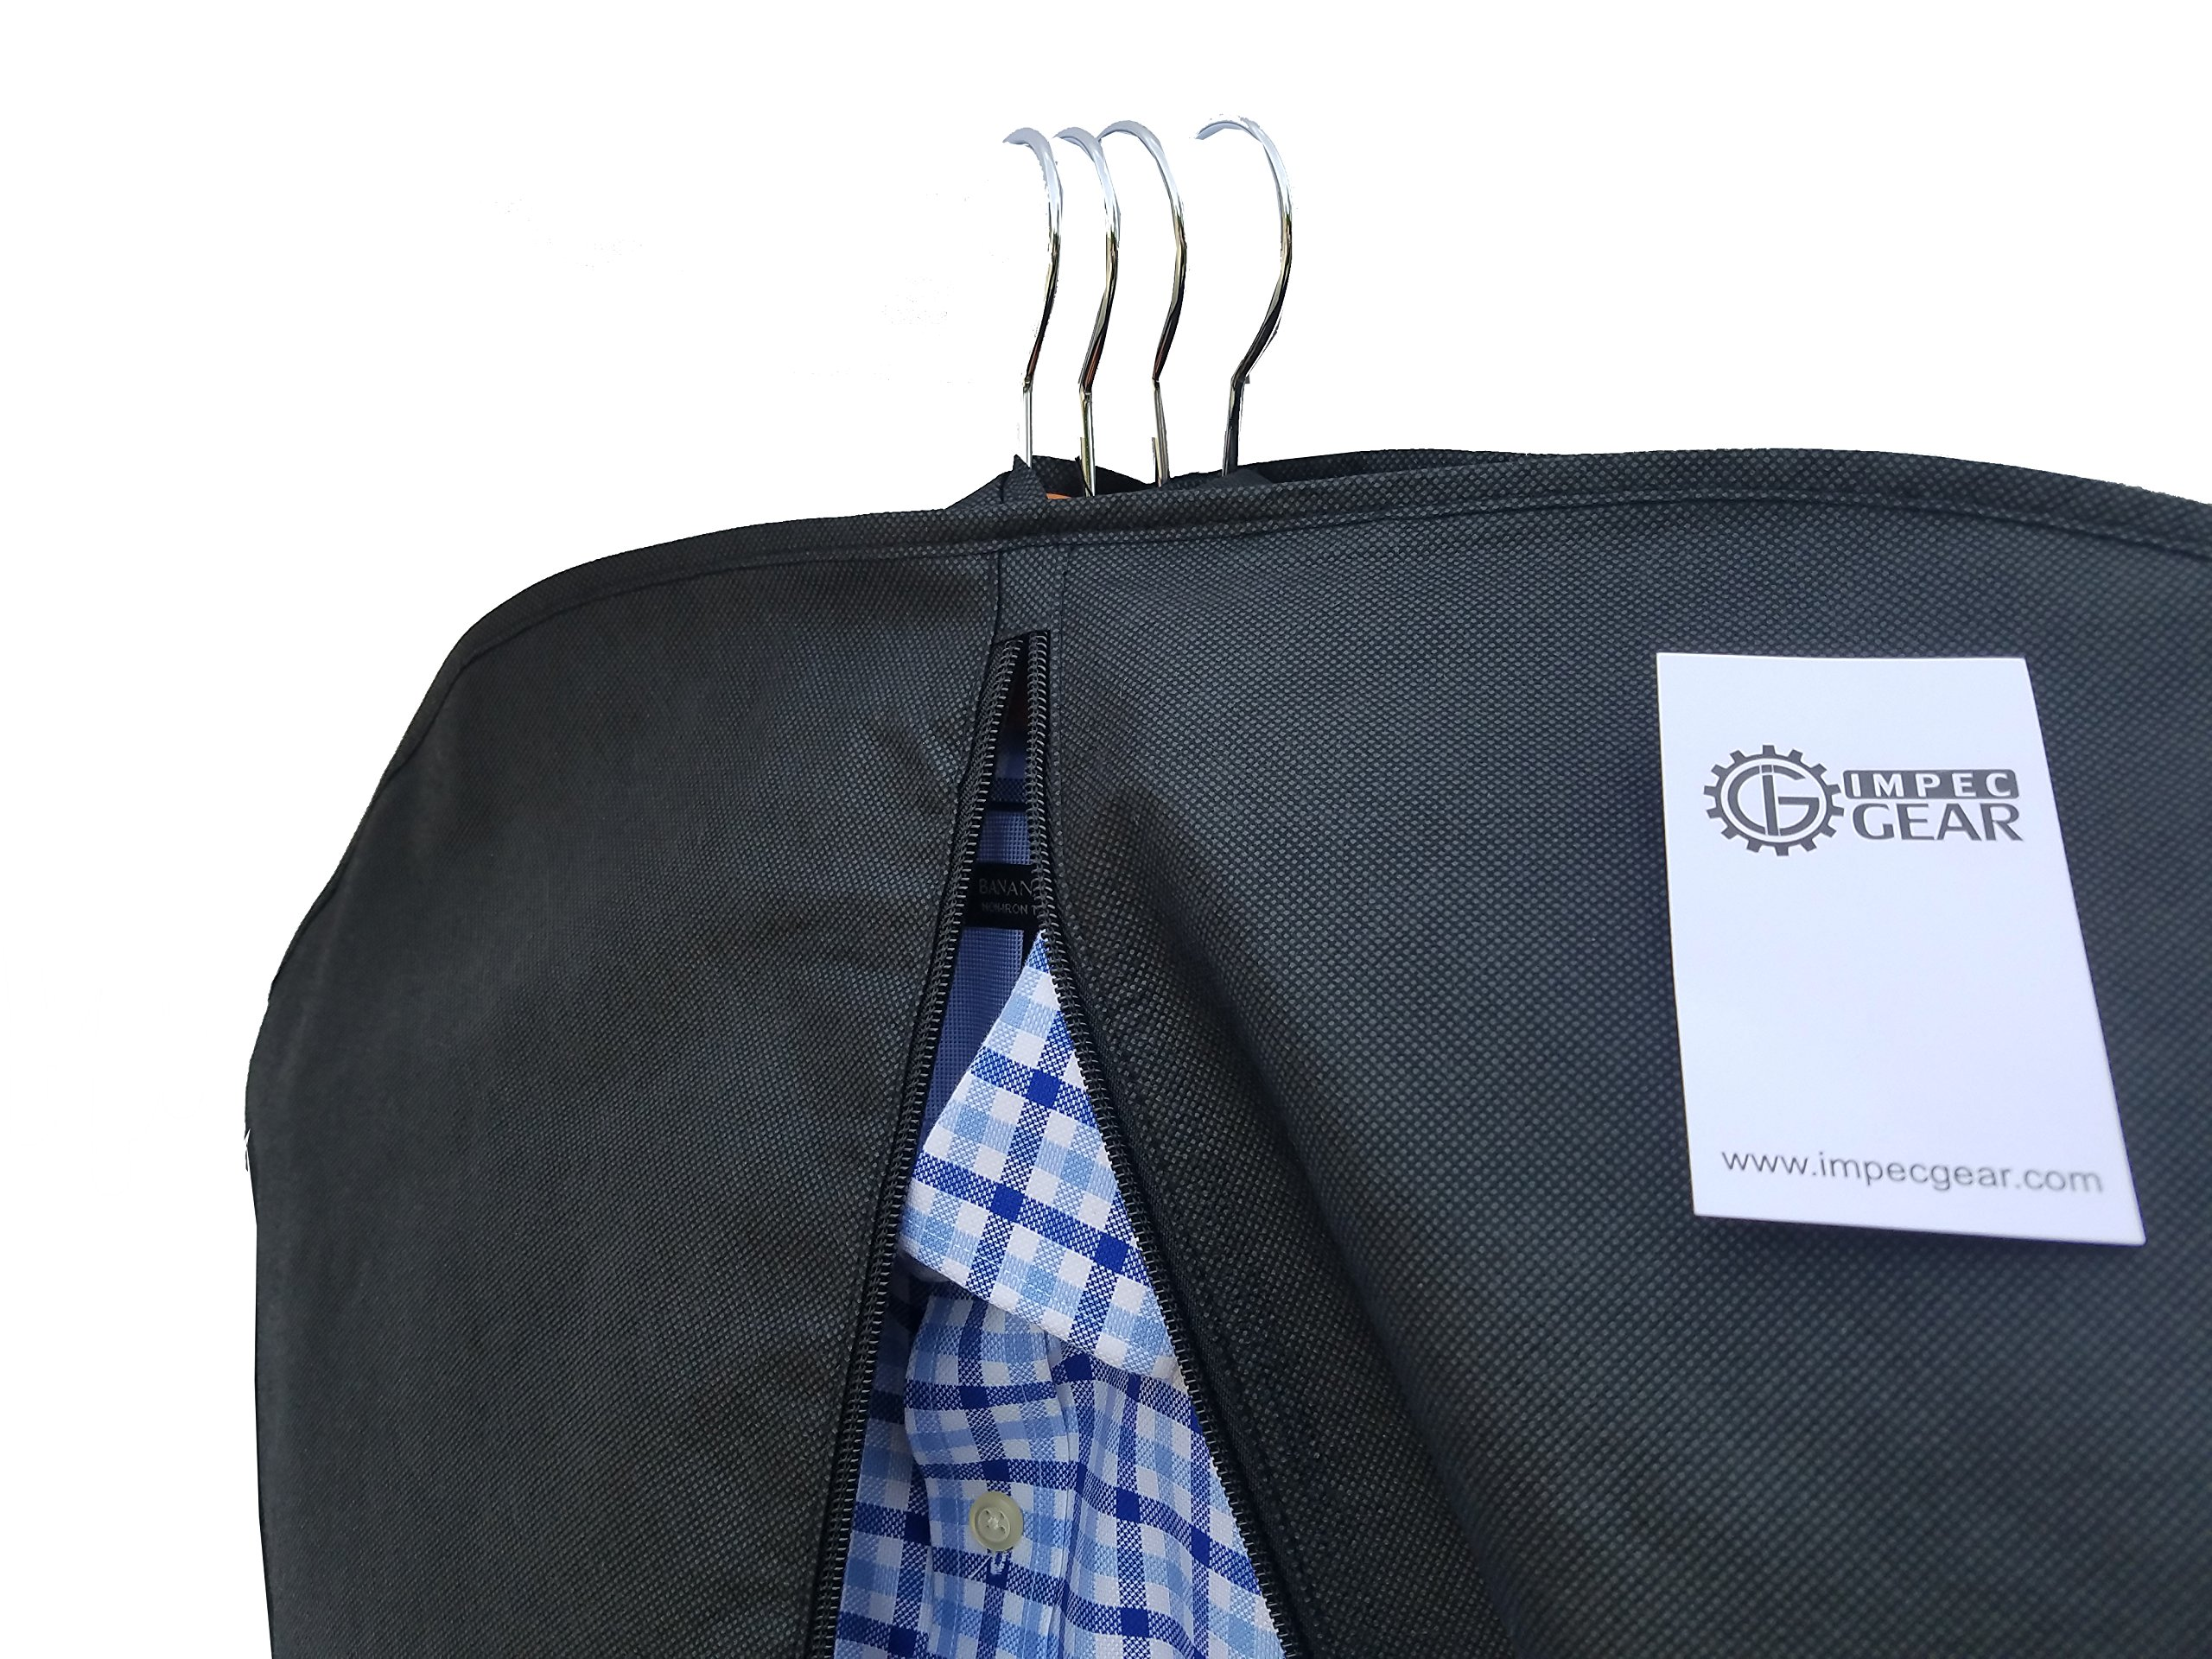 NEW 48'' Breathable Gusseted Travel Garment Bag Cover - For Suits Dress, Clothes, Tux, Jersey Storage Travel (1 PACK)